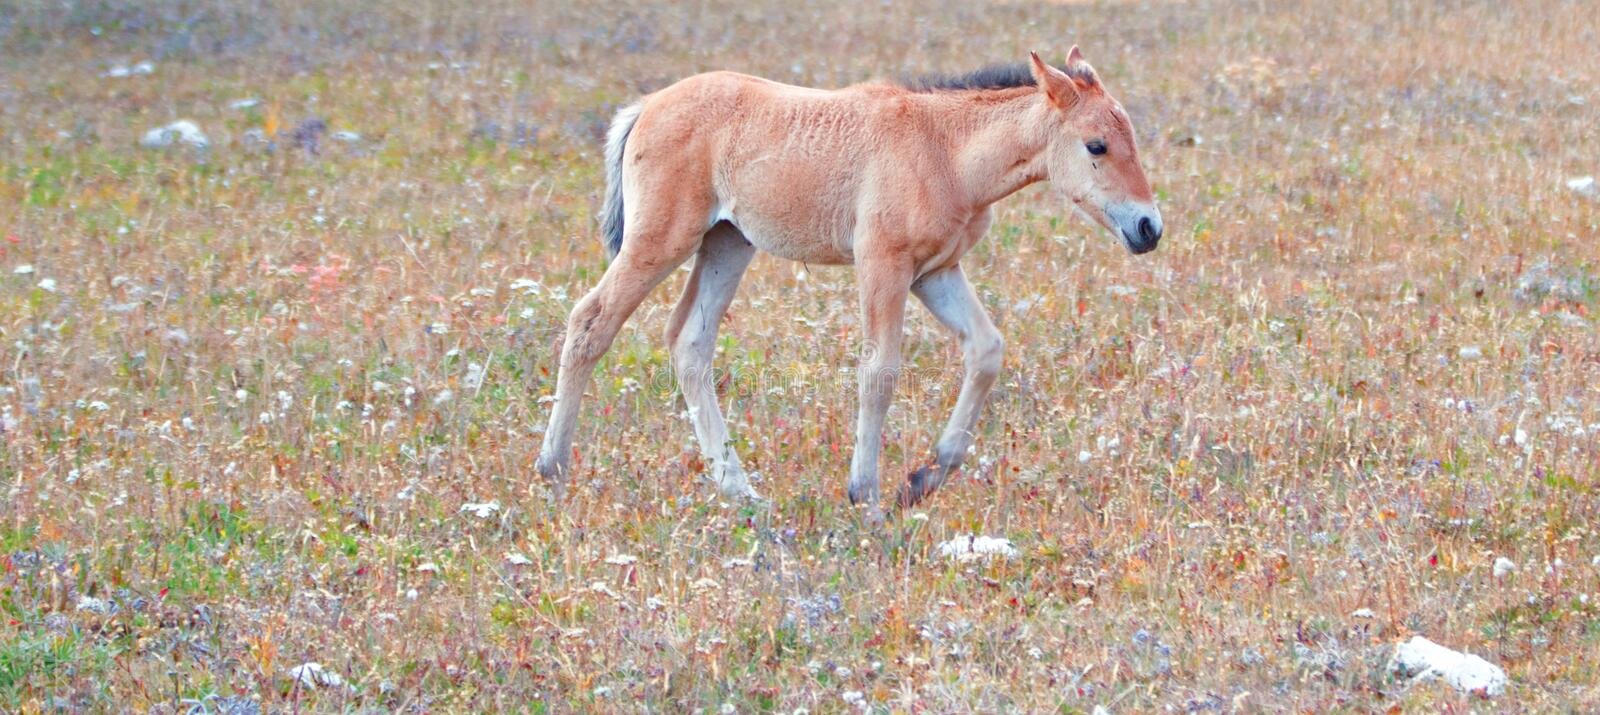 Wild Horse - Dun colored Baby foal colt on Sykes Ridge in the Pryor Mountains Wild Horse Range on border of Montana and Wyoming US. Wild Horse - Dun Bay colored stock photos